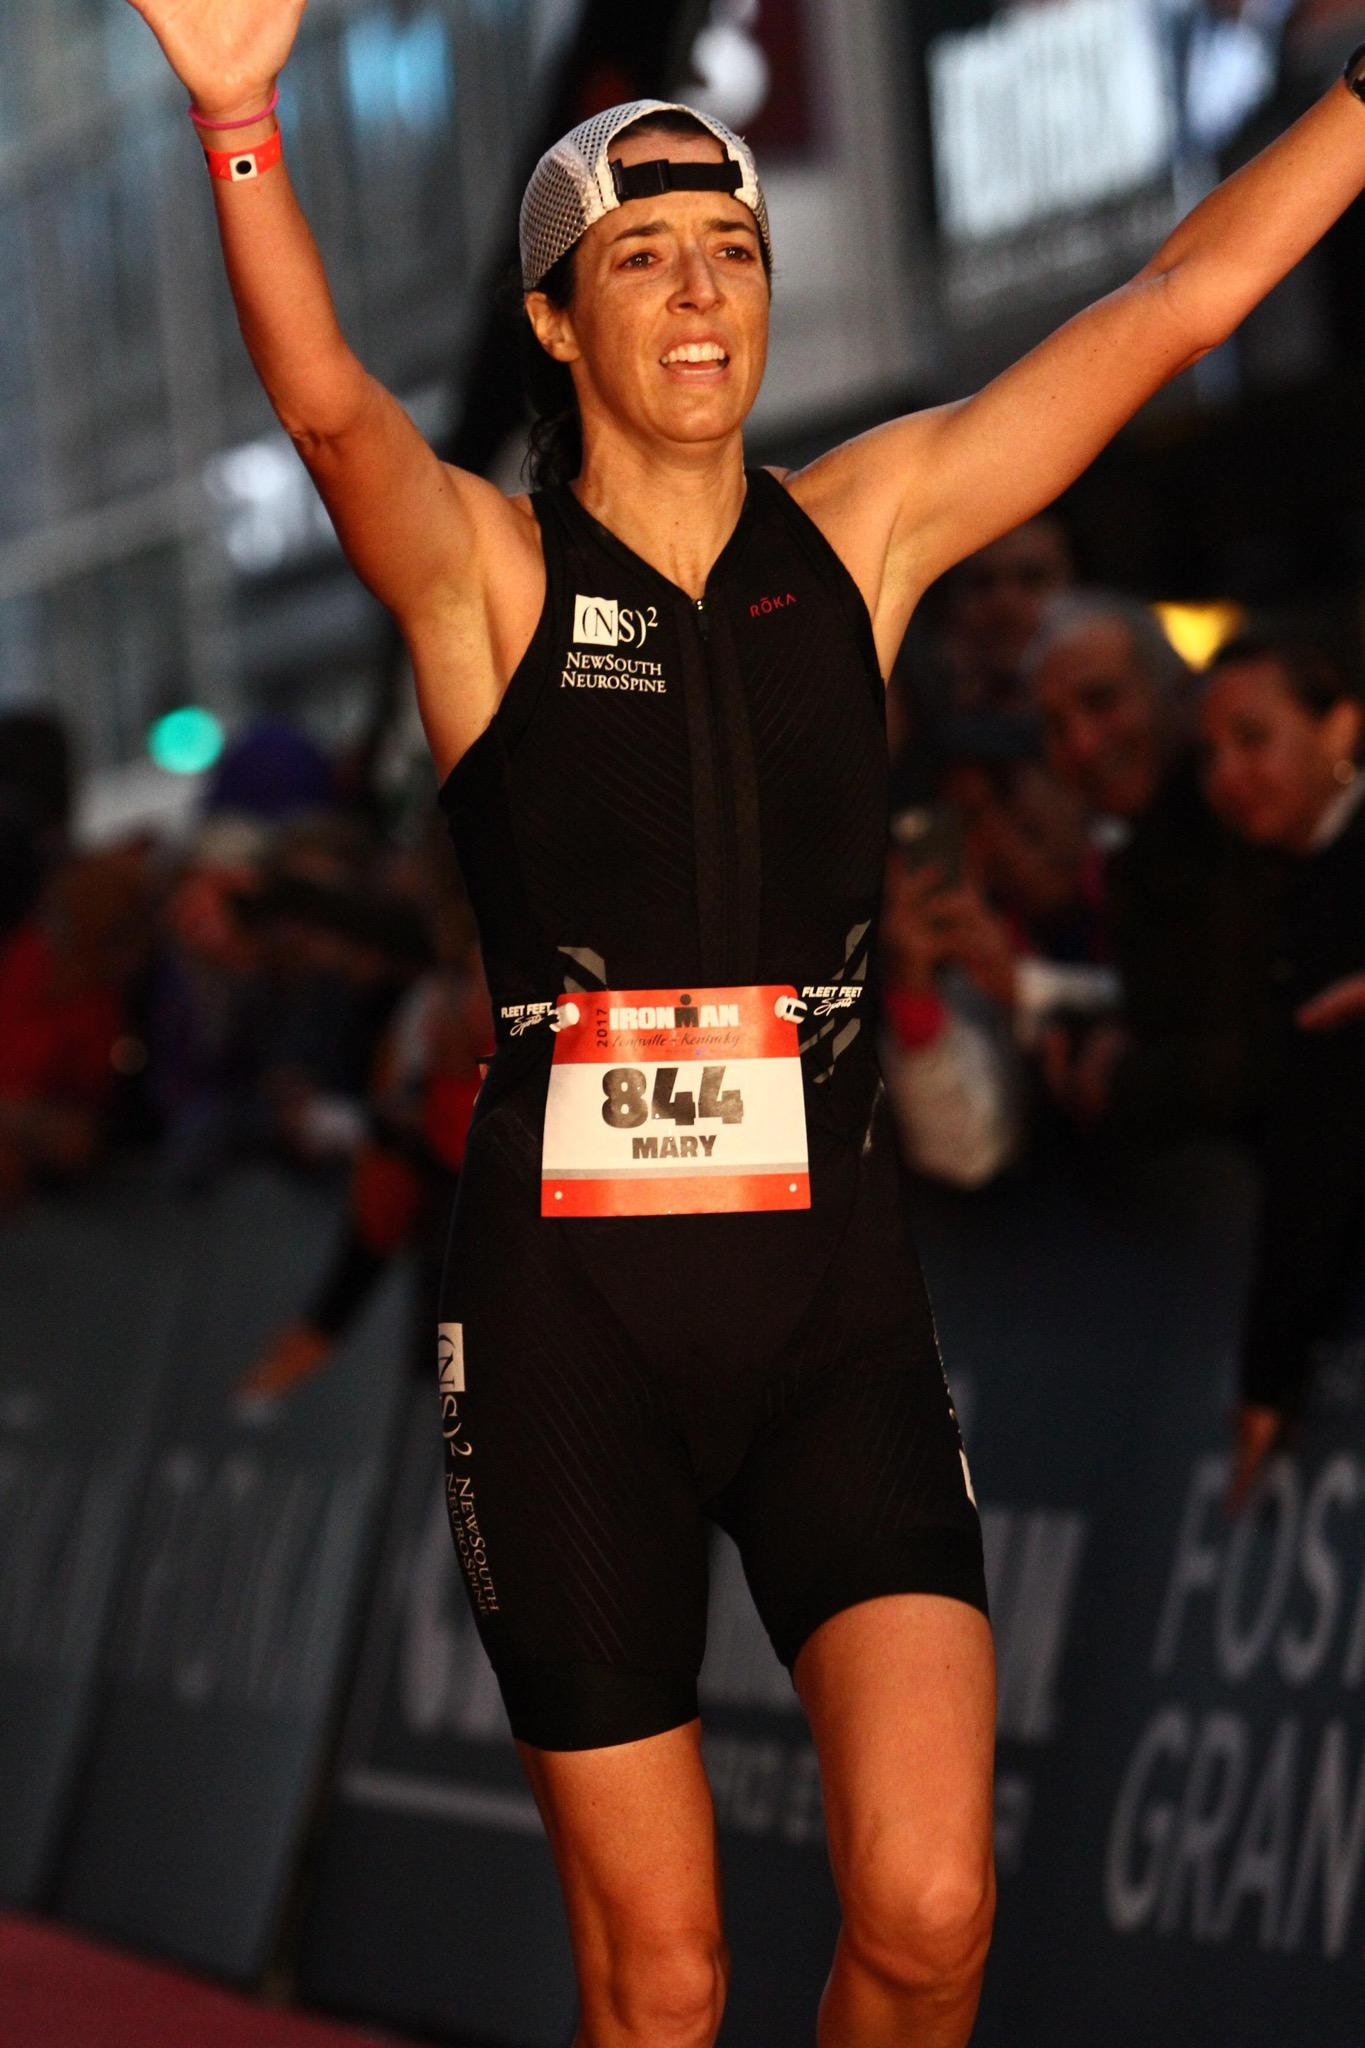 Dr. Robinson qualifies for the upcoming Ironman World Championship in Kona.